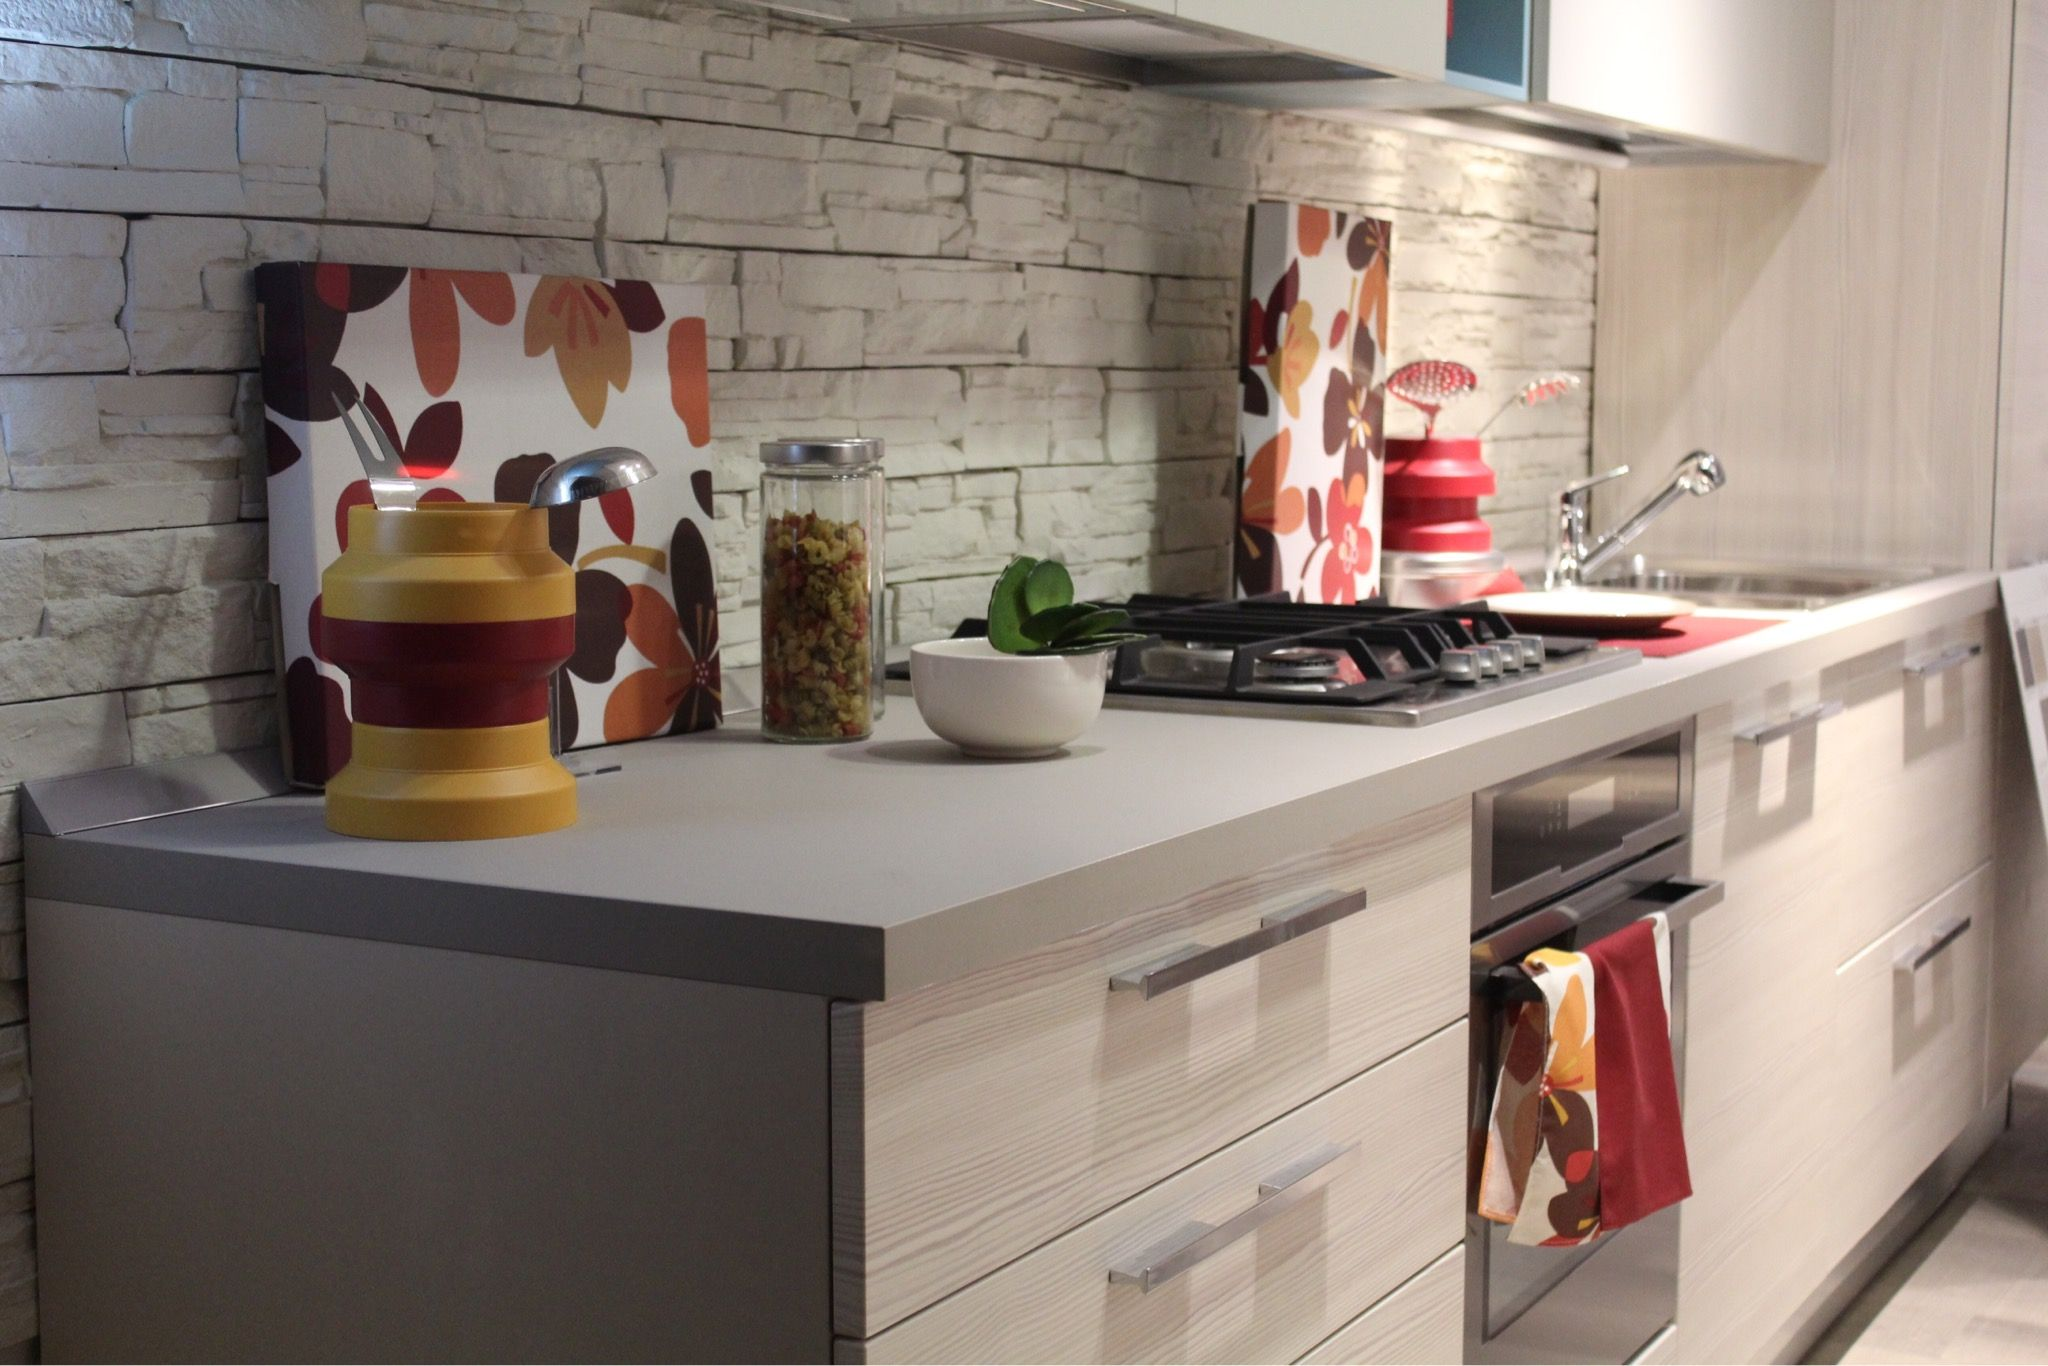 Yay or Nay on this kitchen detailing Tell us why kitchen